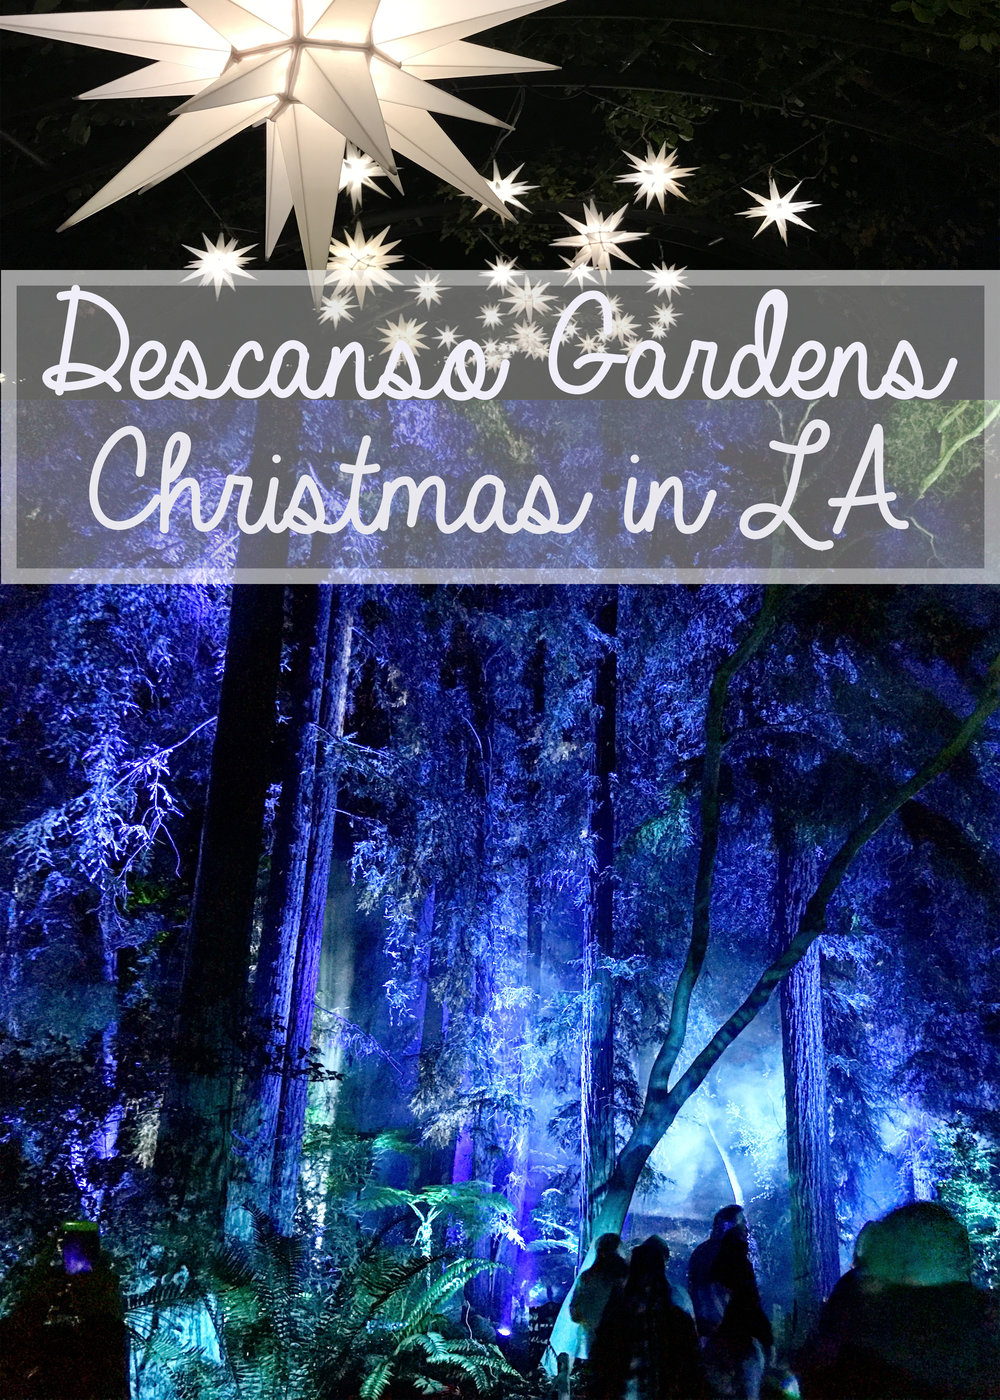 Descanso Gardens Christmas in LA